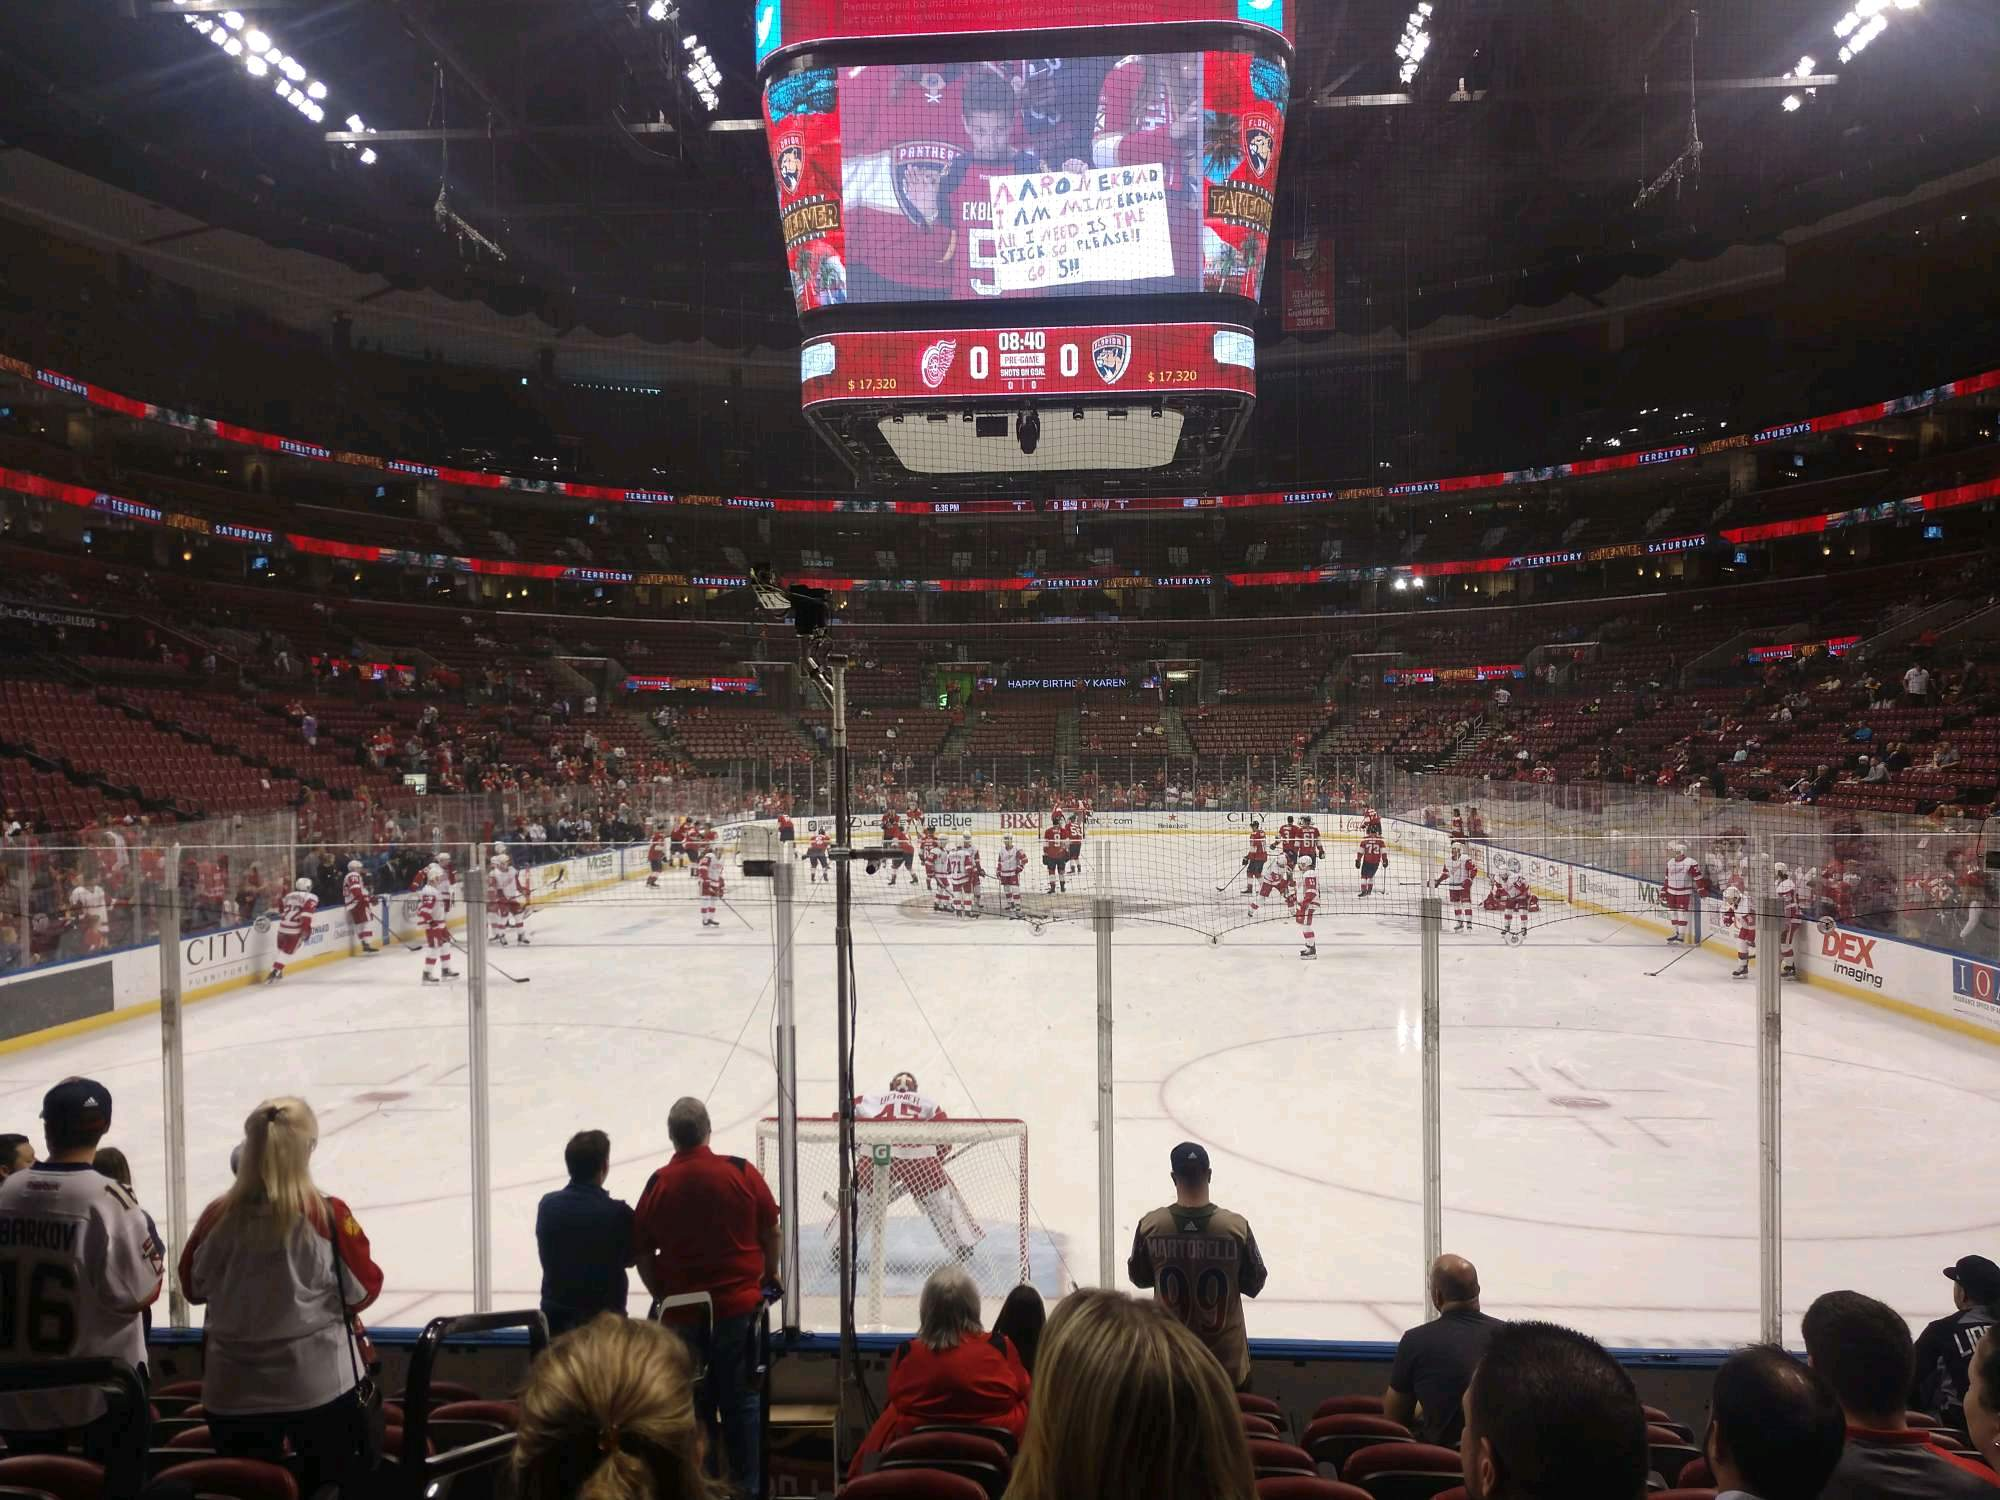 BB&T Center Section 125 Row 9 Seat 18